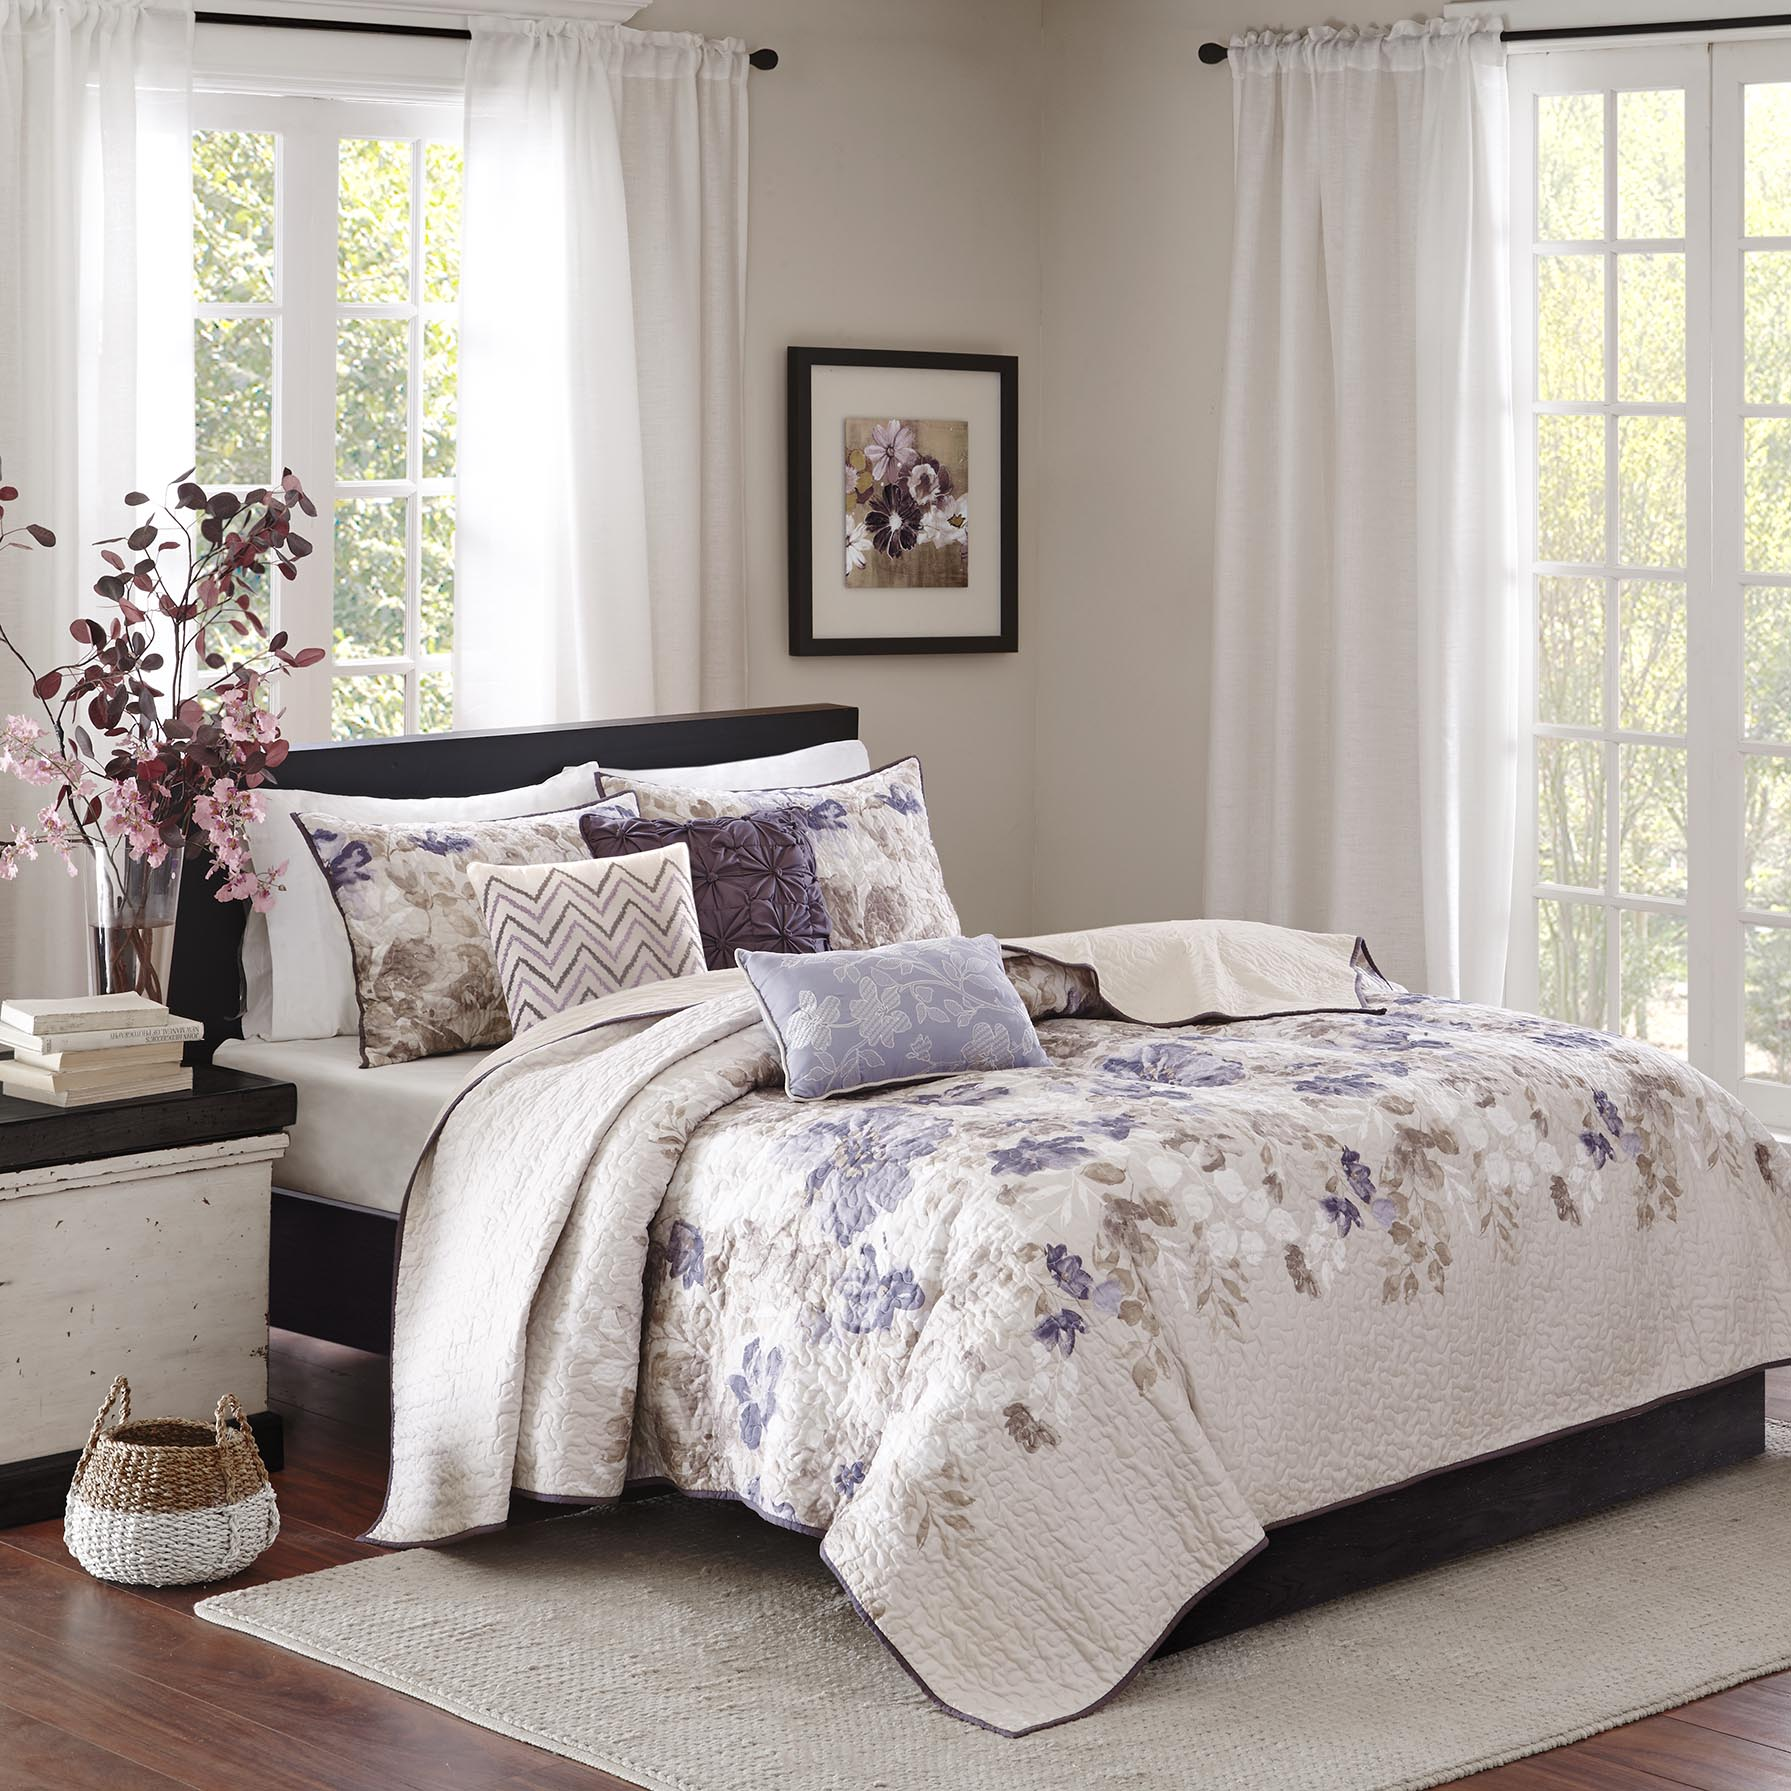 Home Essence Willow 6 Piece Reversible Printed Coverlet Bedding Set